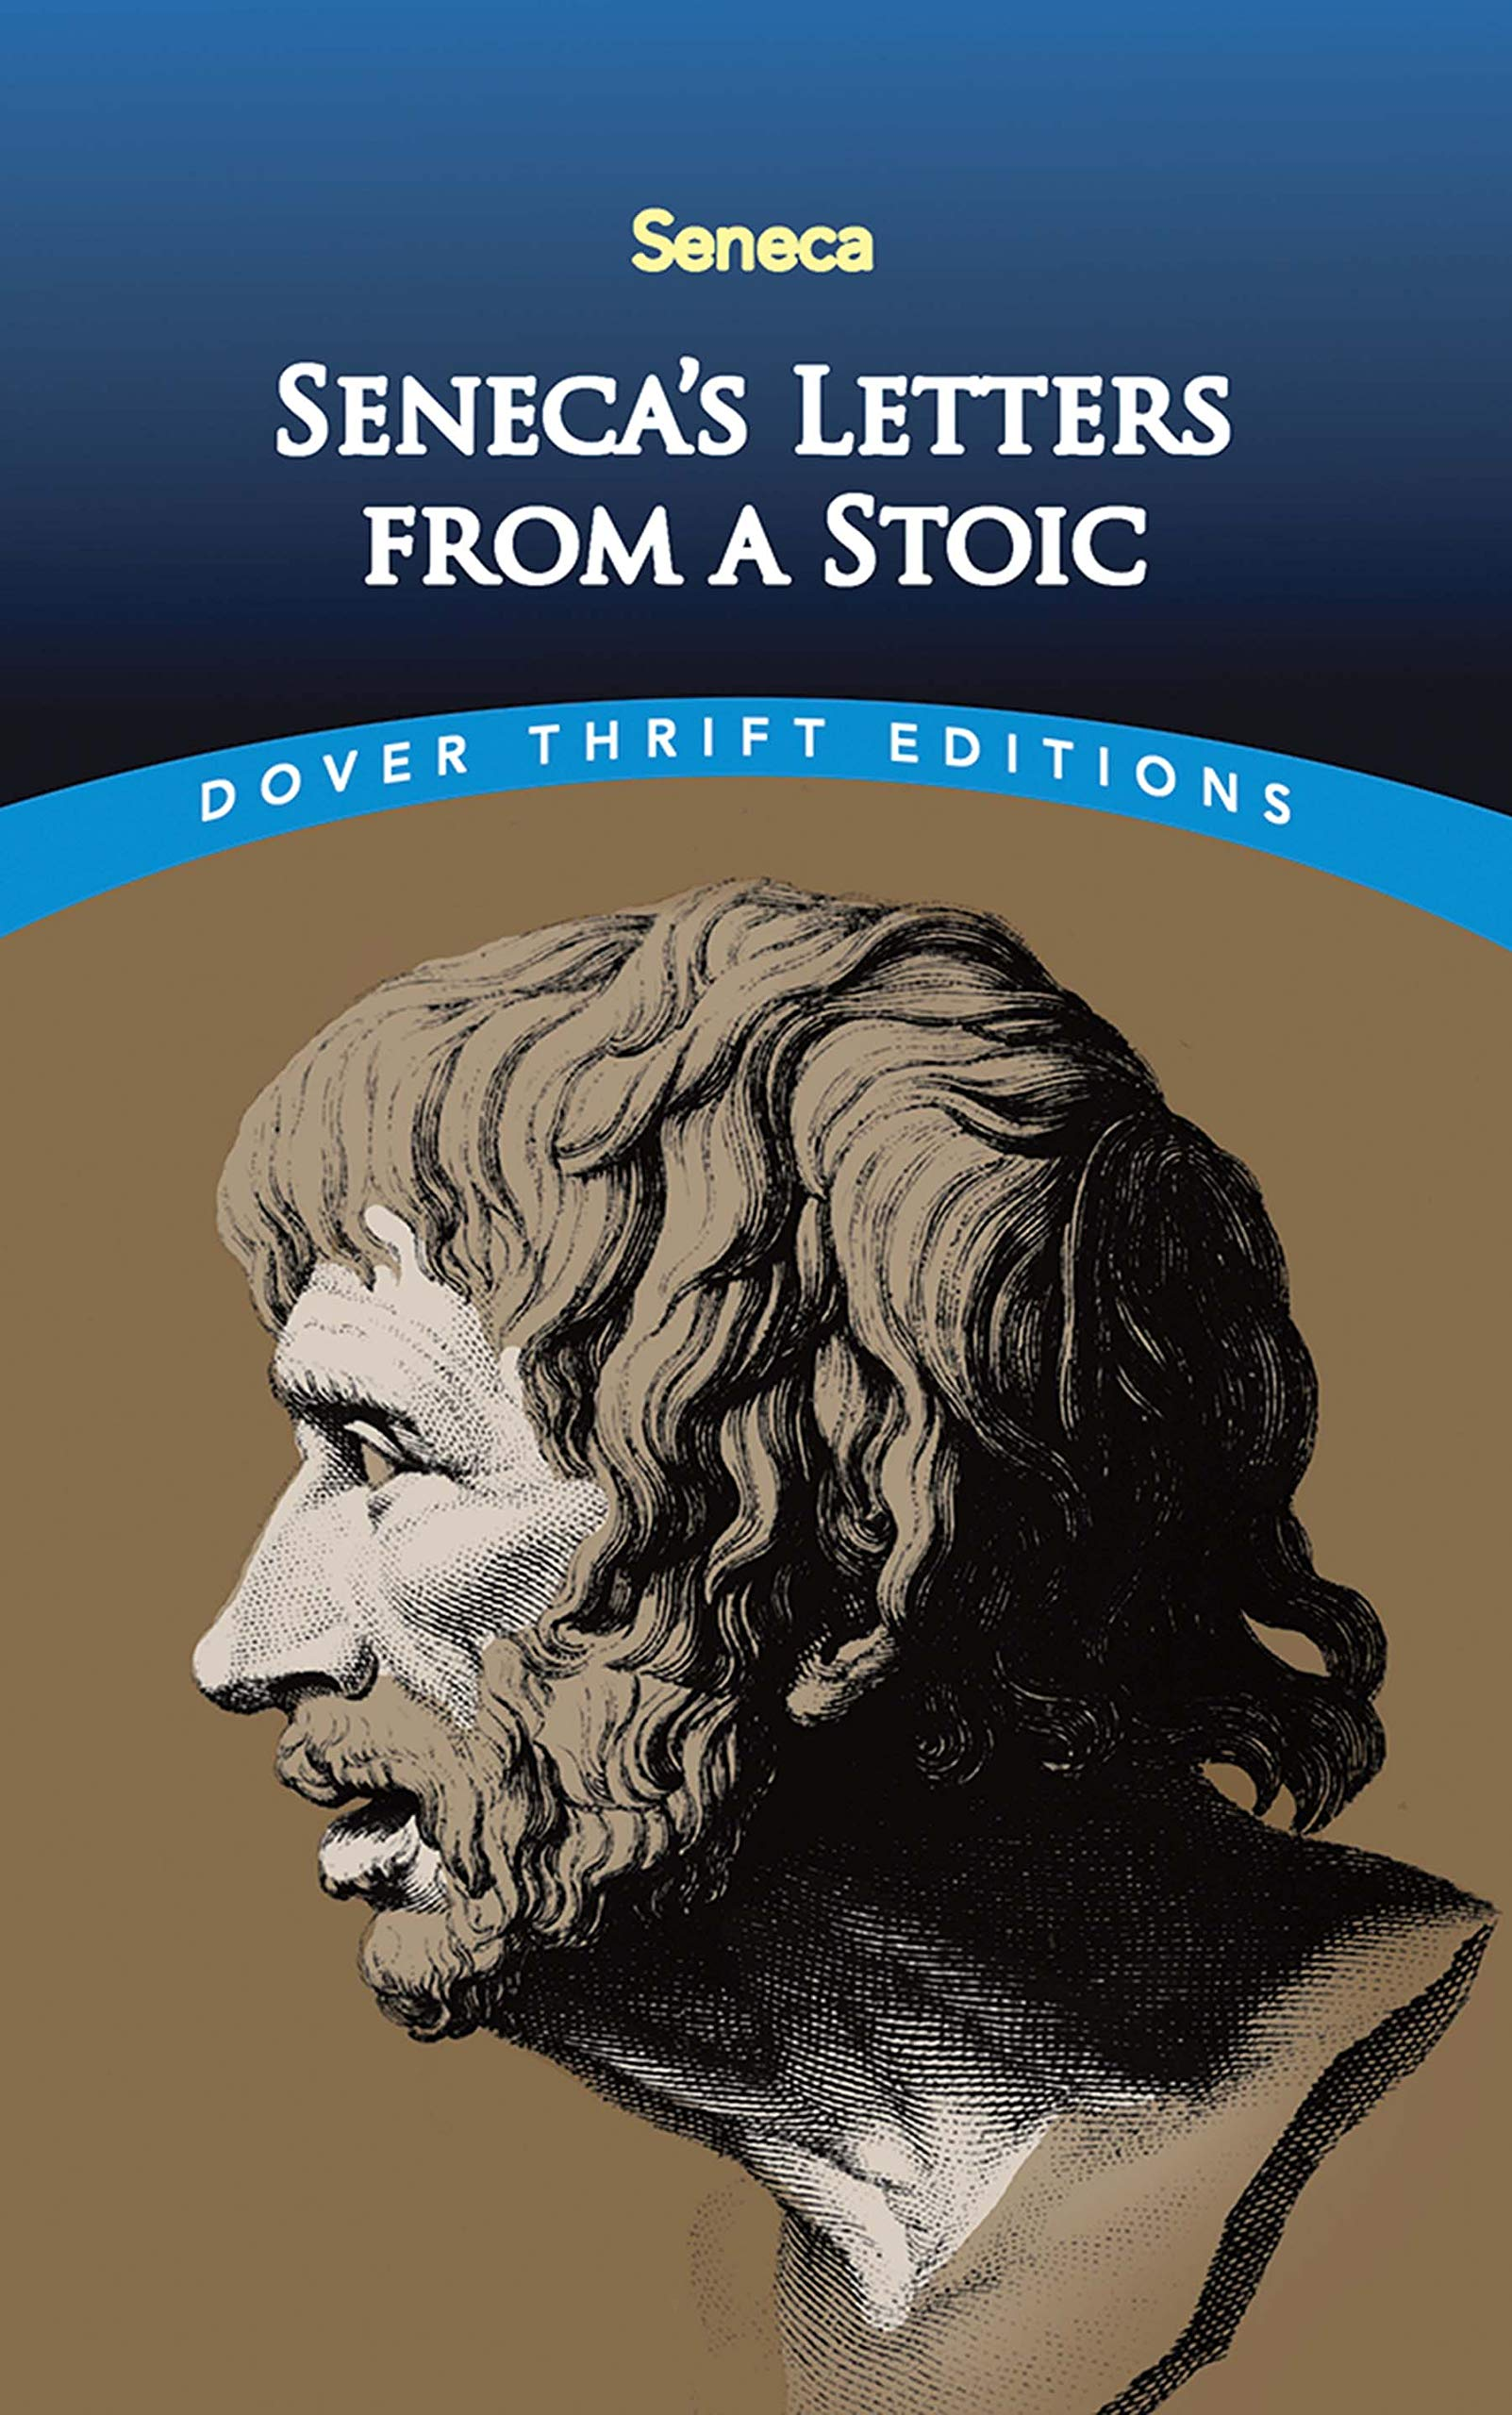 Seneca S Letters From A Stoic Dover Thrift Editions Seneca L